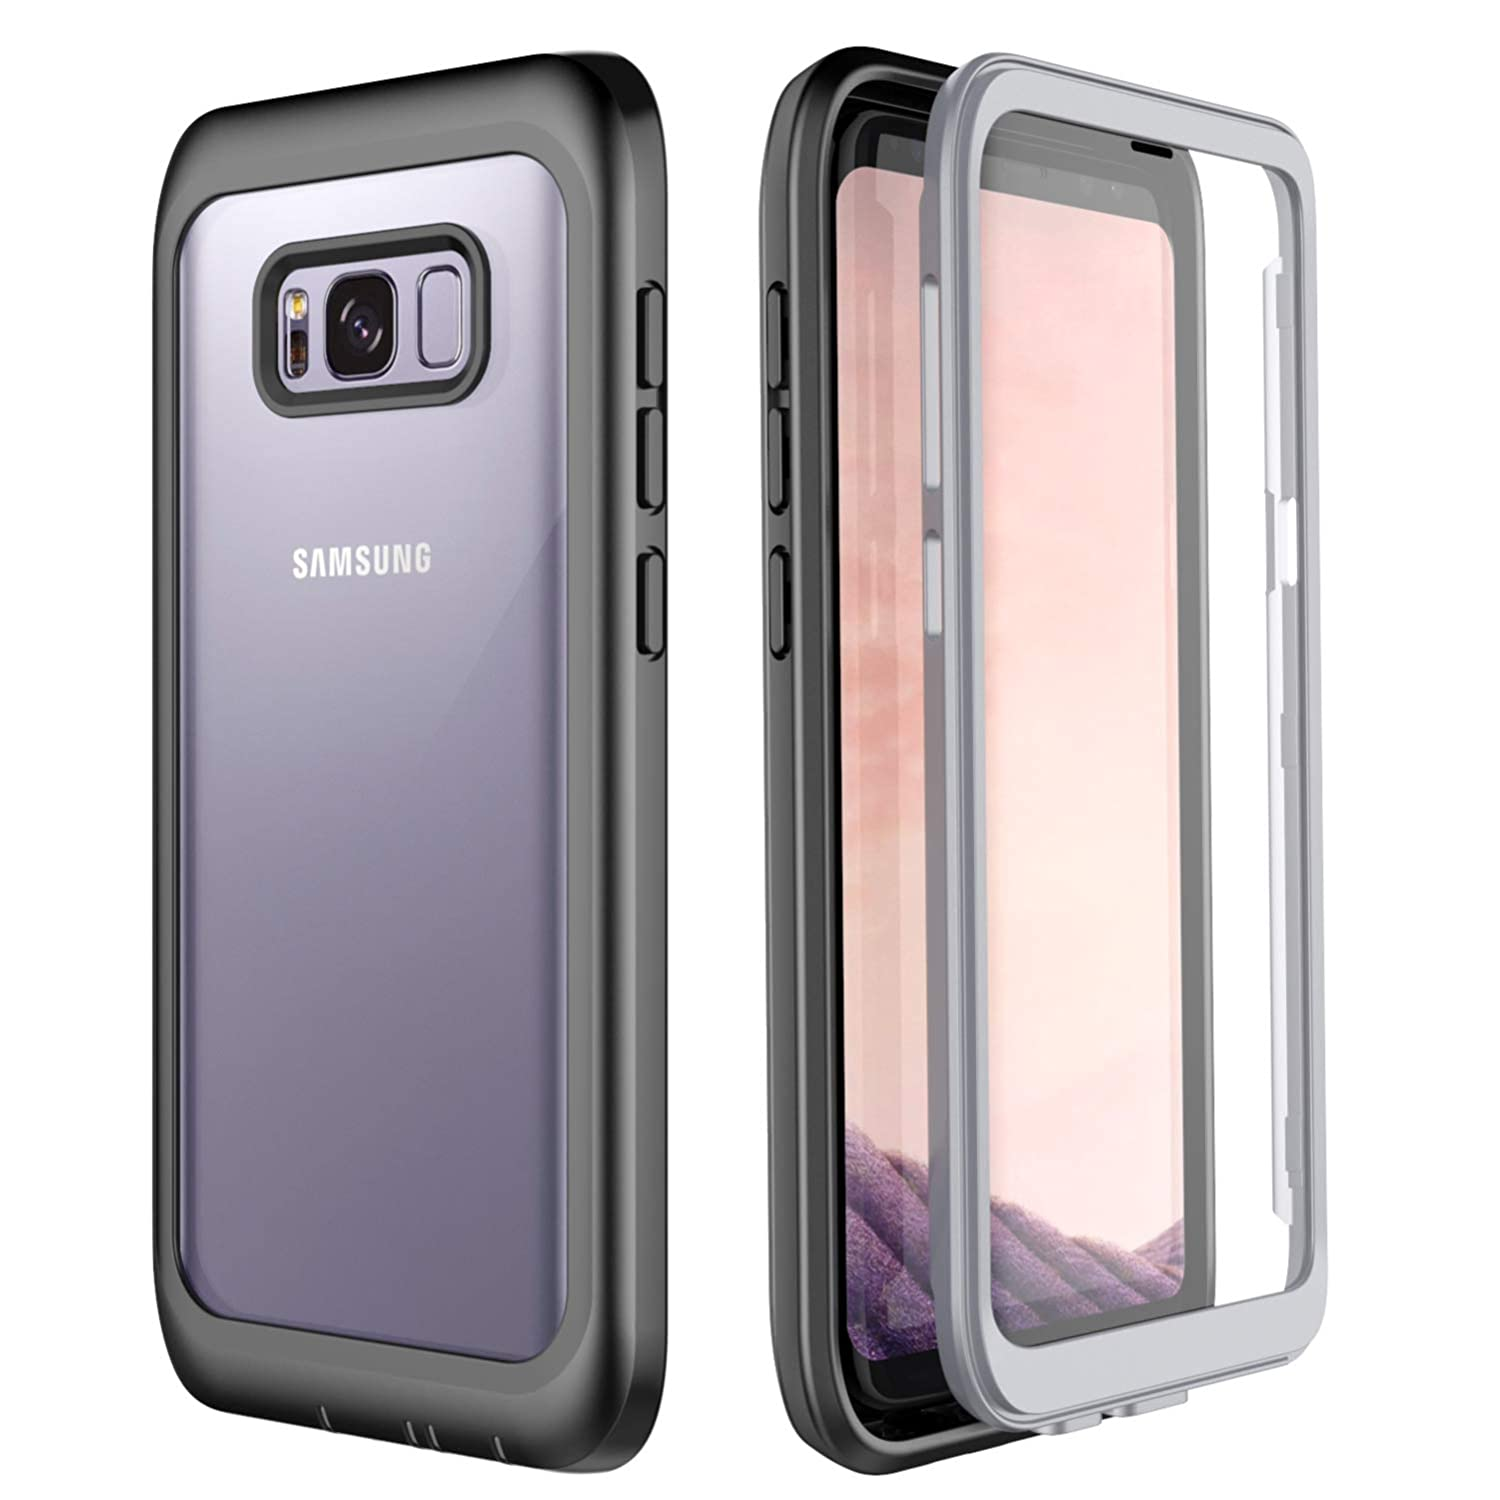 outlet store 32723 484ba Samsung Galaxy S8 Plus Case, Singdo Built-in Screen Protector Cover 360  Degree Protection Heavy Duty Clear Bumper Case for Samsung Galaxy S8+ Plus  ...